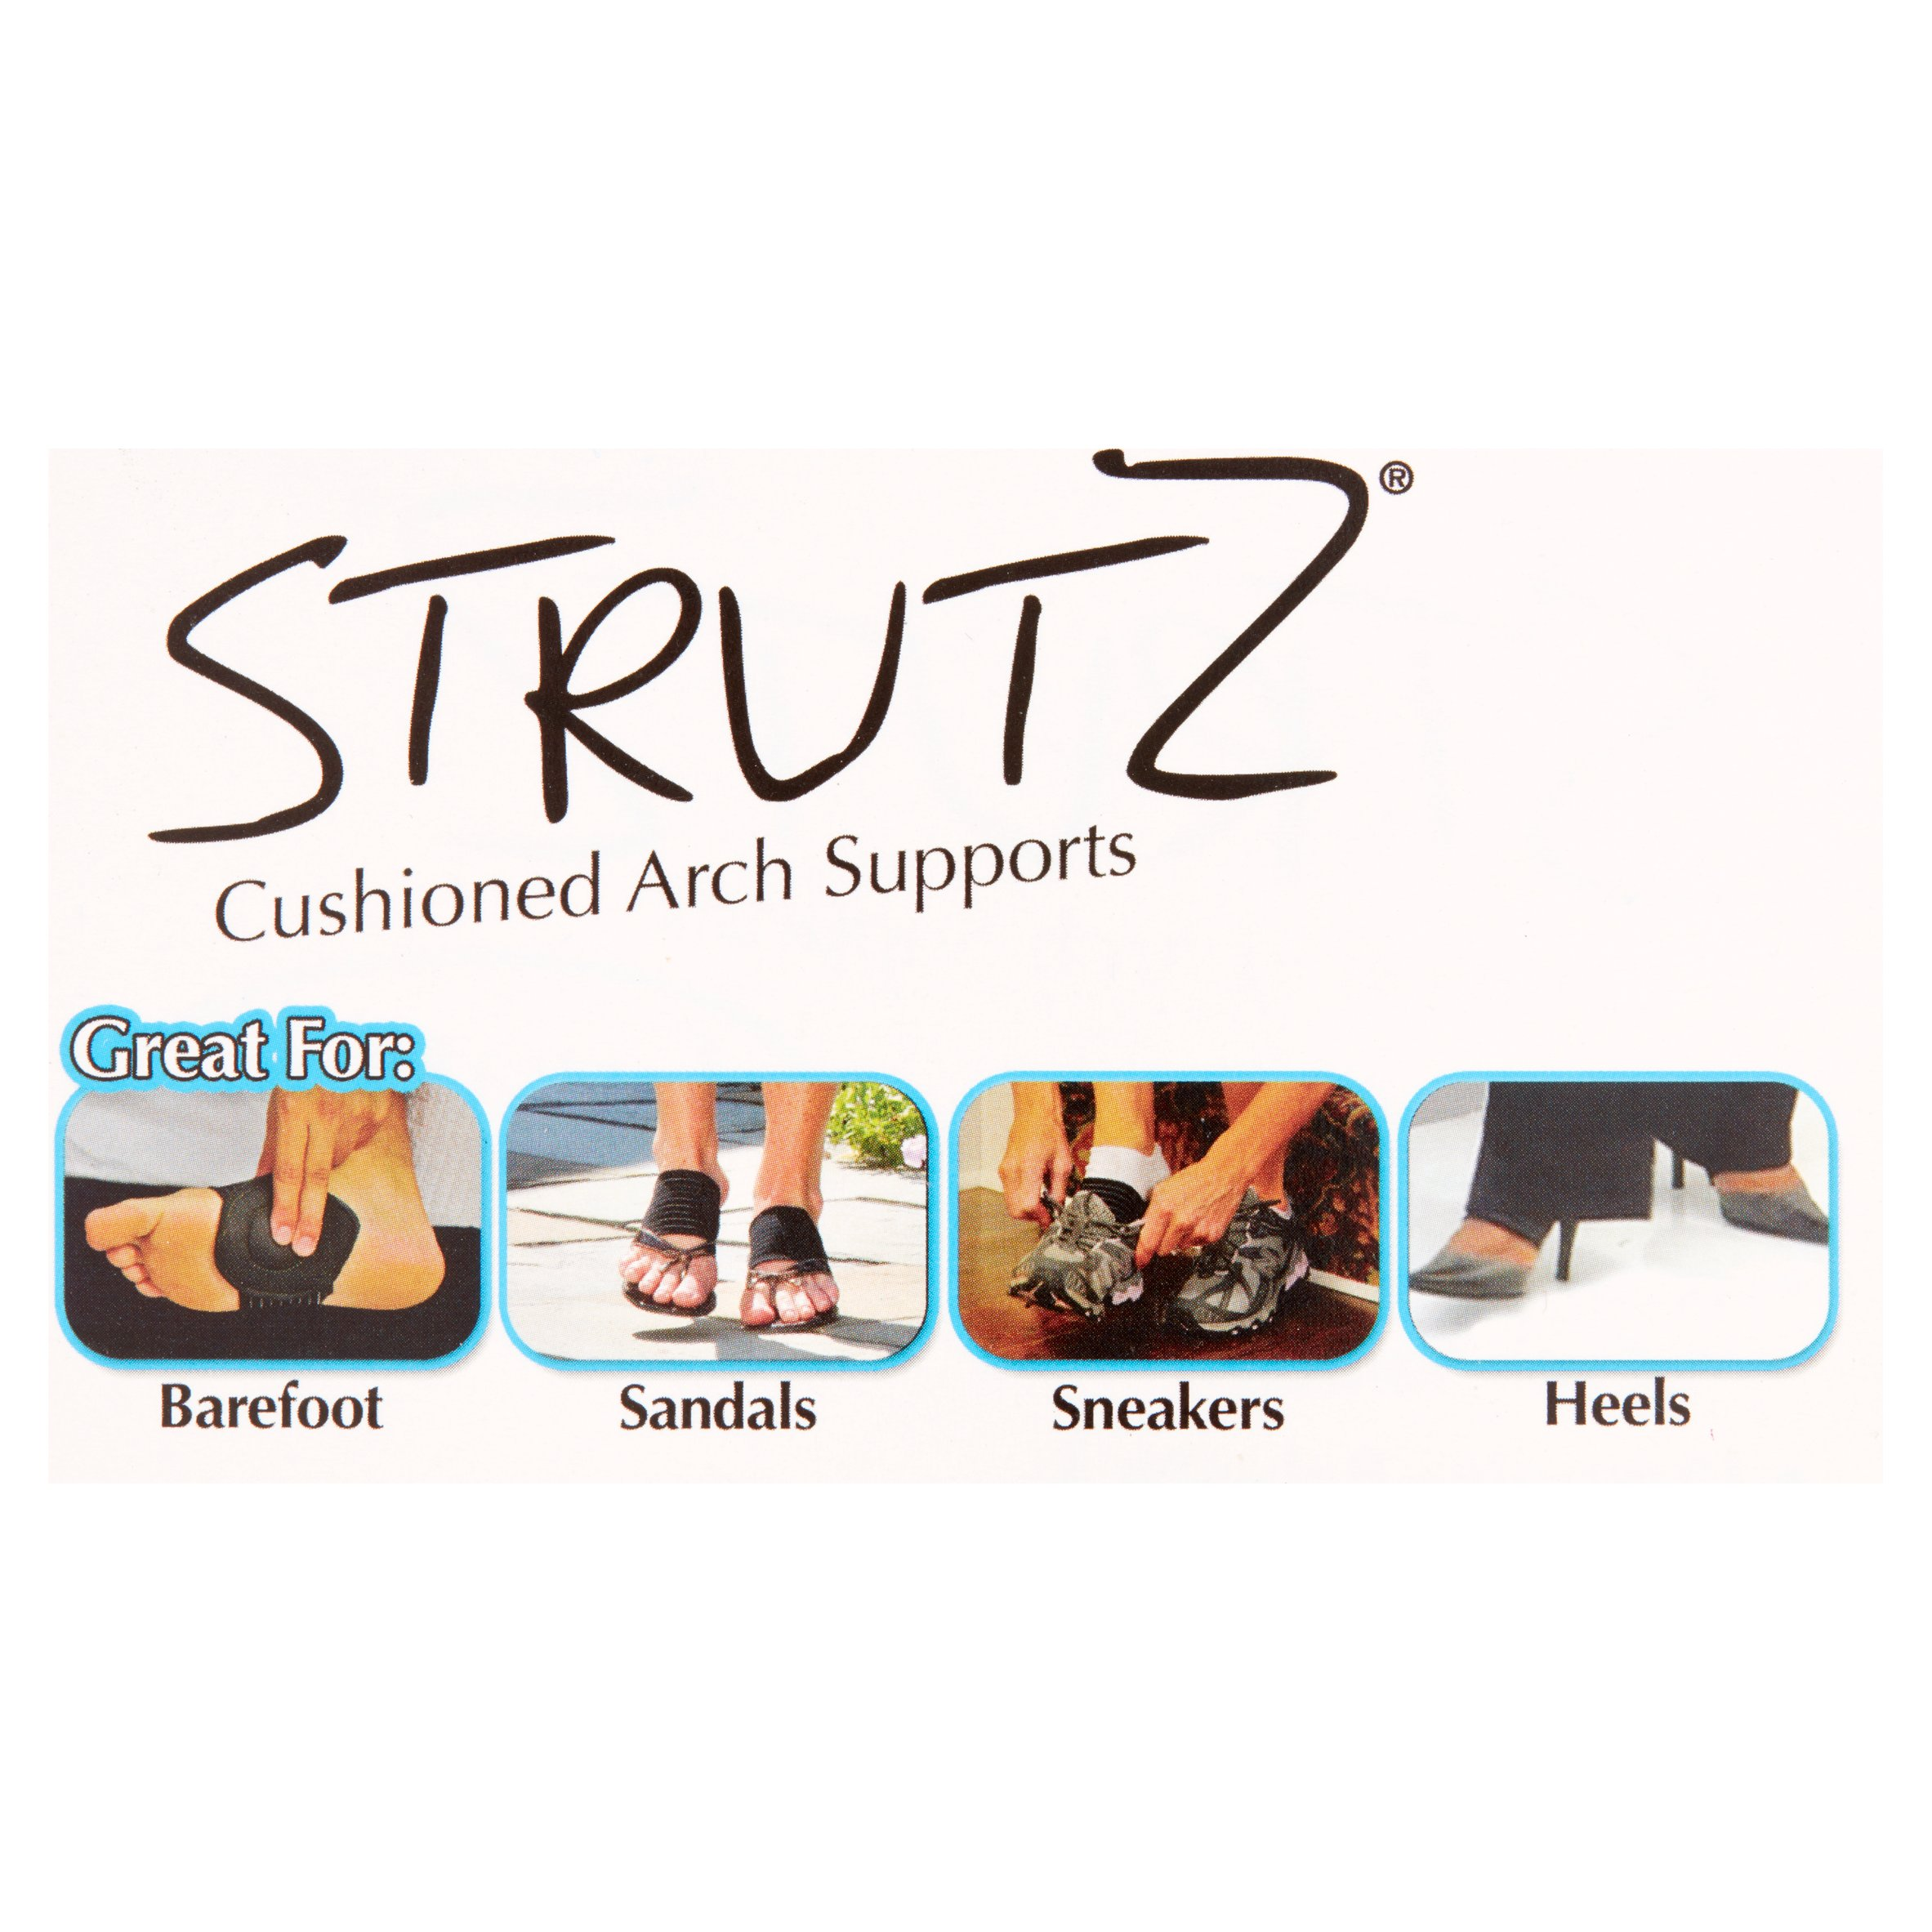 Strutz Cushioned Arch Supports 2 Count